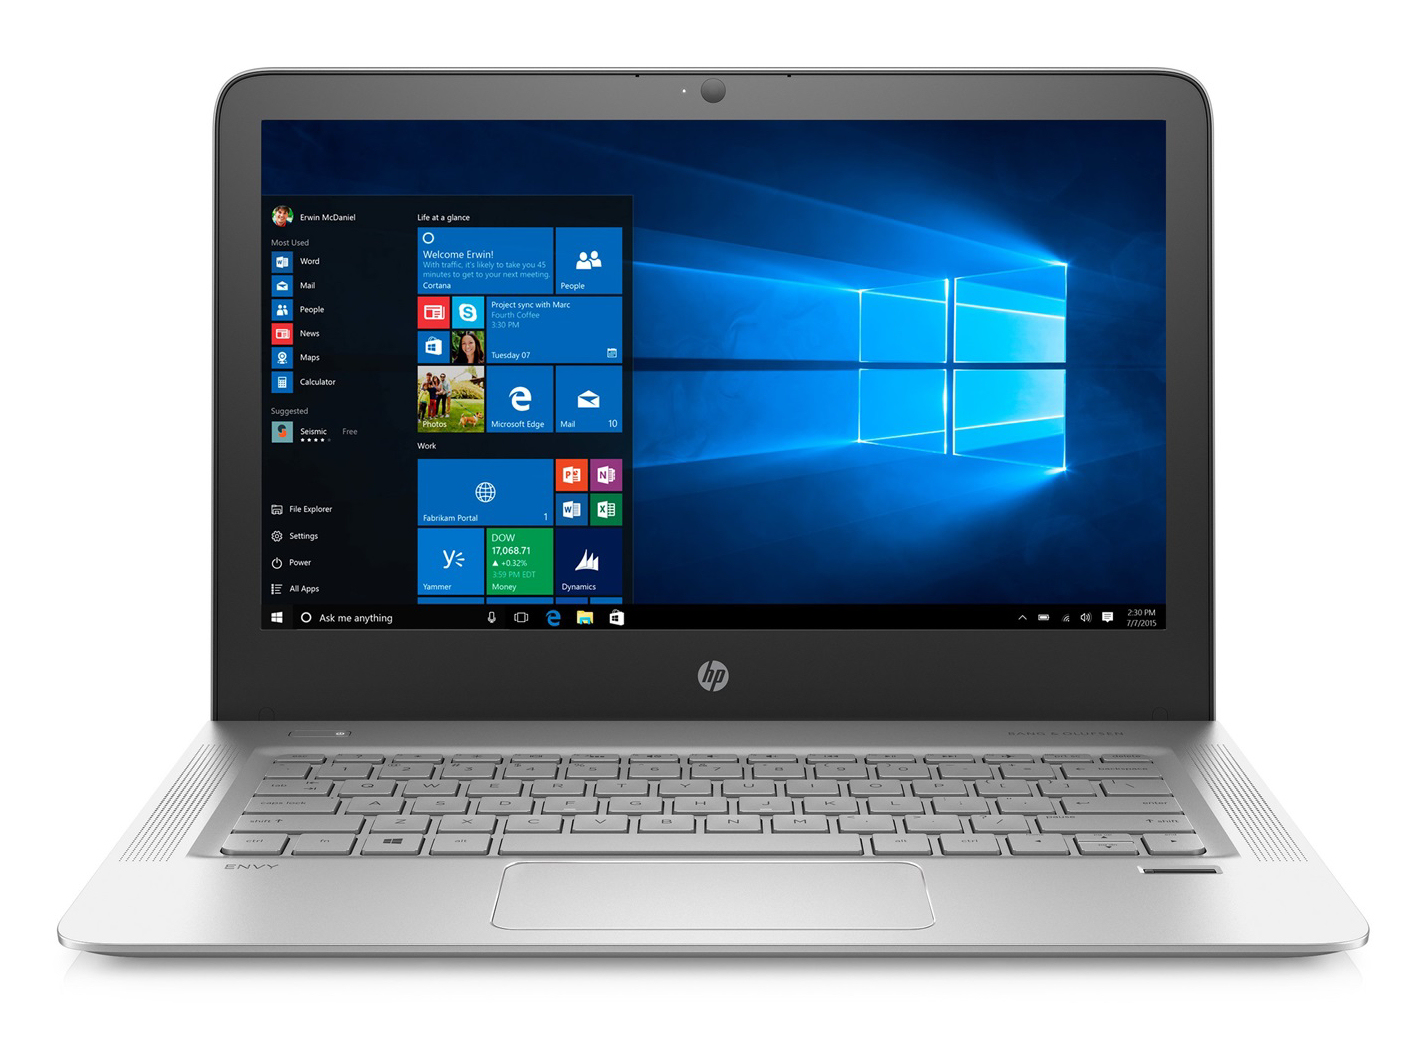 Hp Envy 13 D020ng Subnotebook Review Notebookcheck Net